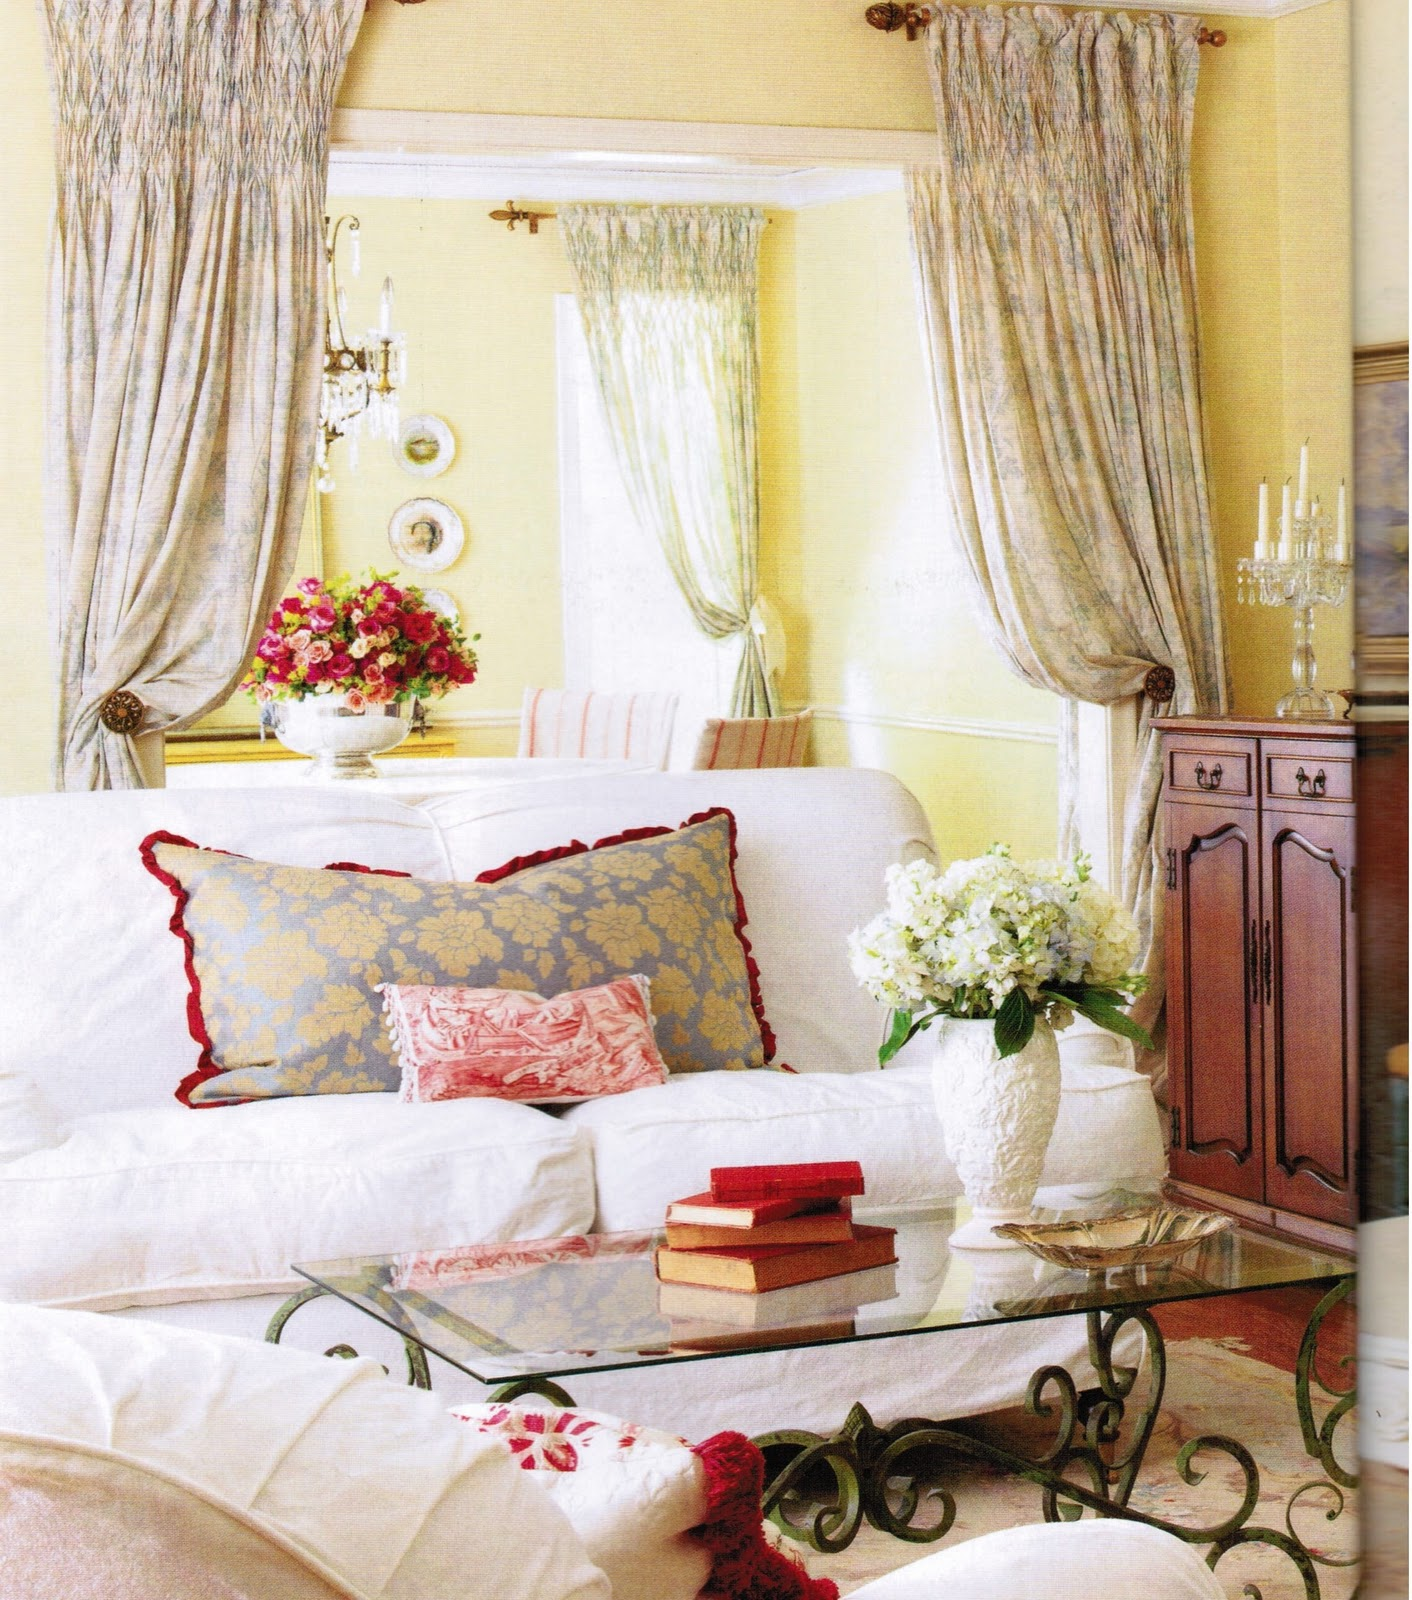 Living Room Home Decorating Ideas: Maison Decor: French Country: Enchanting Yellow & White